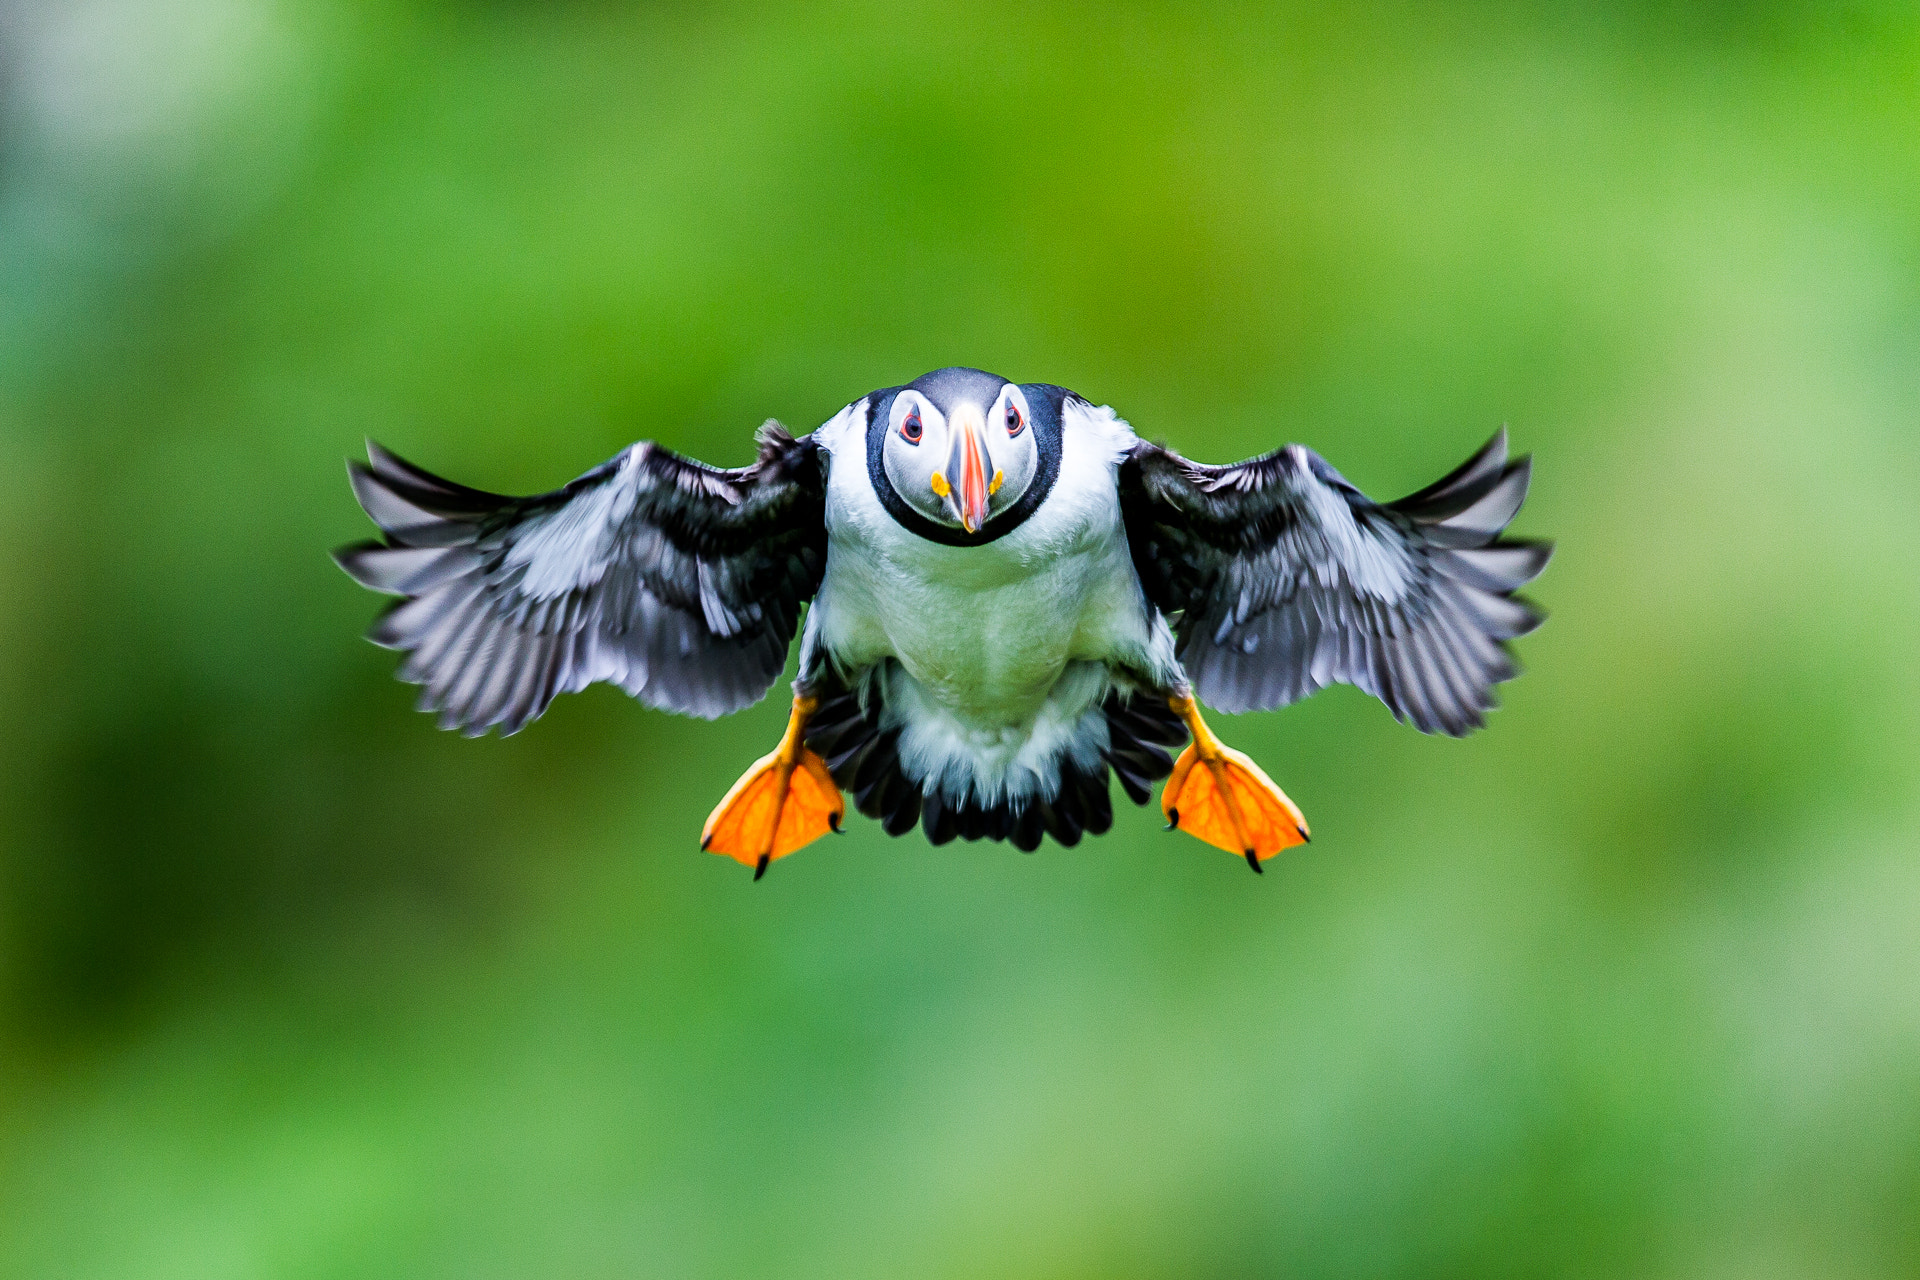 Photograph Atlantic puffin by Stephane Leroy on 500px